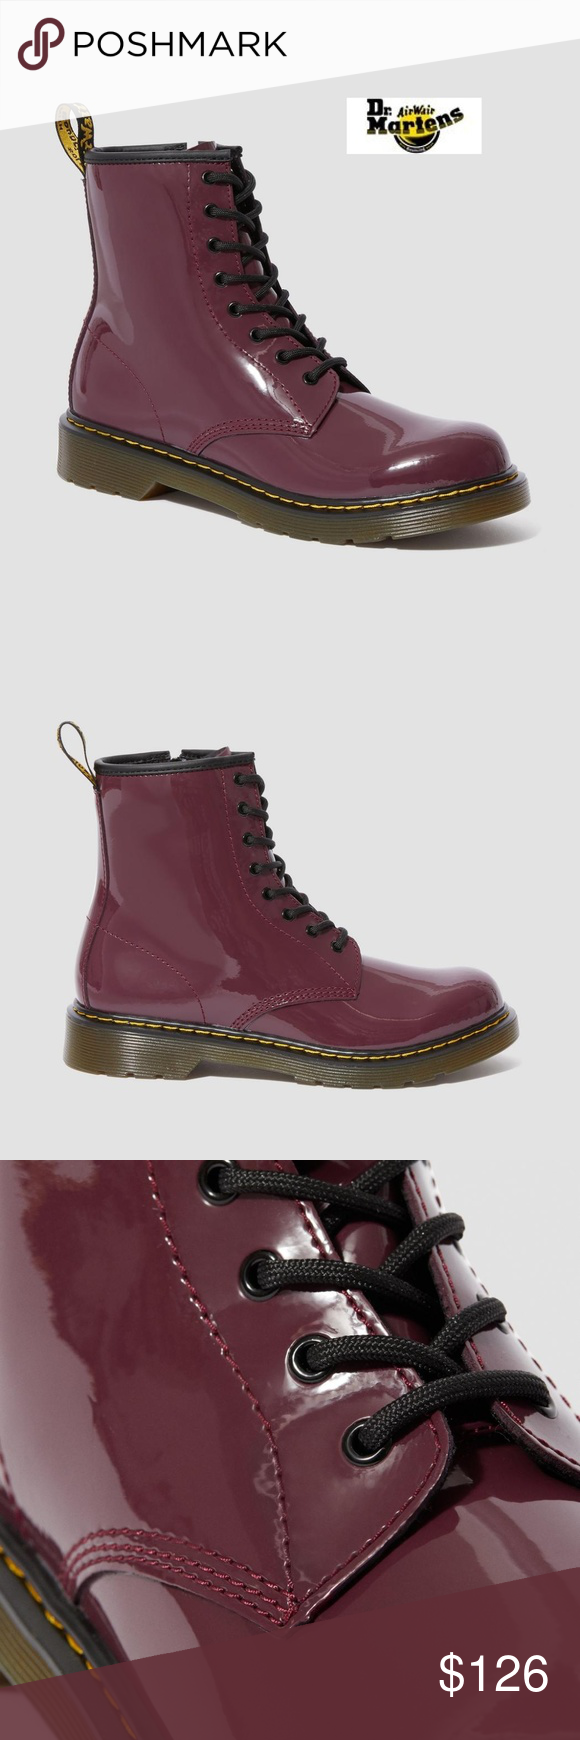 Dr Martens 1460 Plum Patent Lamper Nwt Boots Martens Bootie Boots